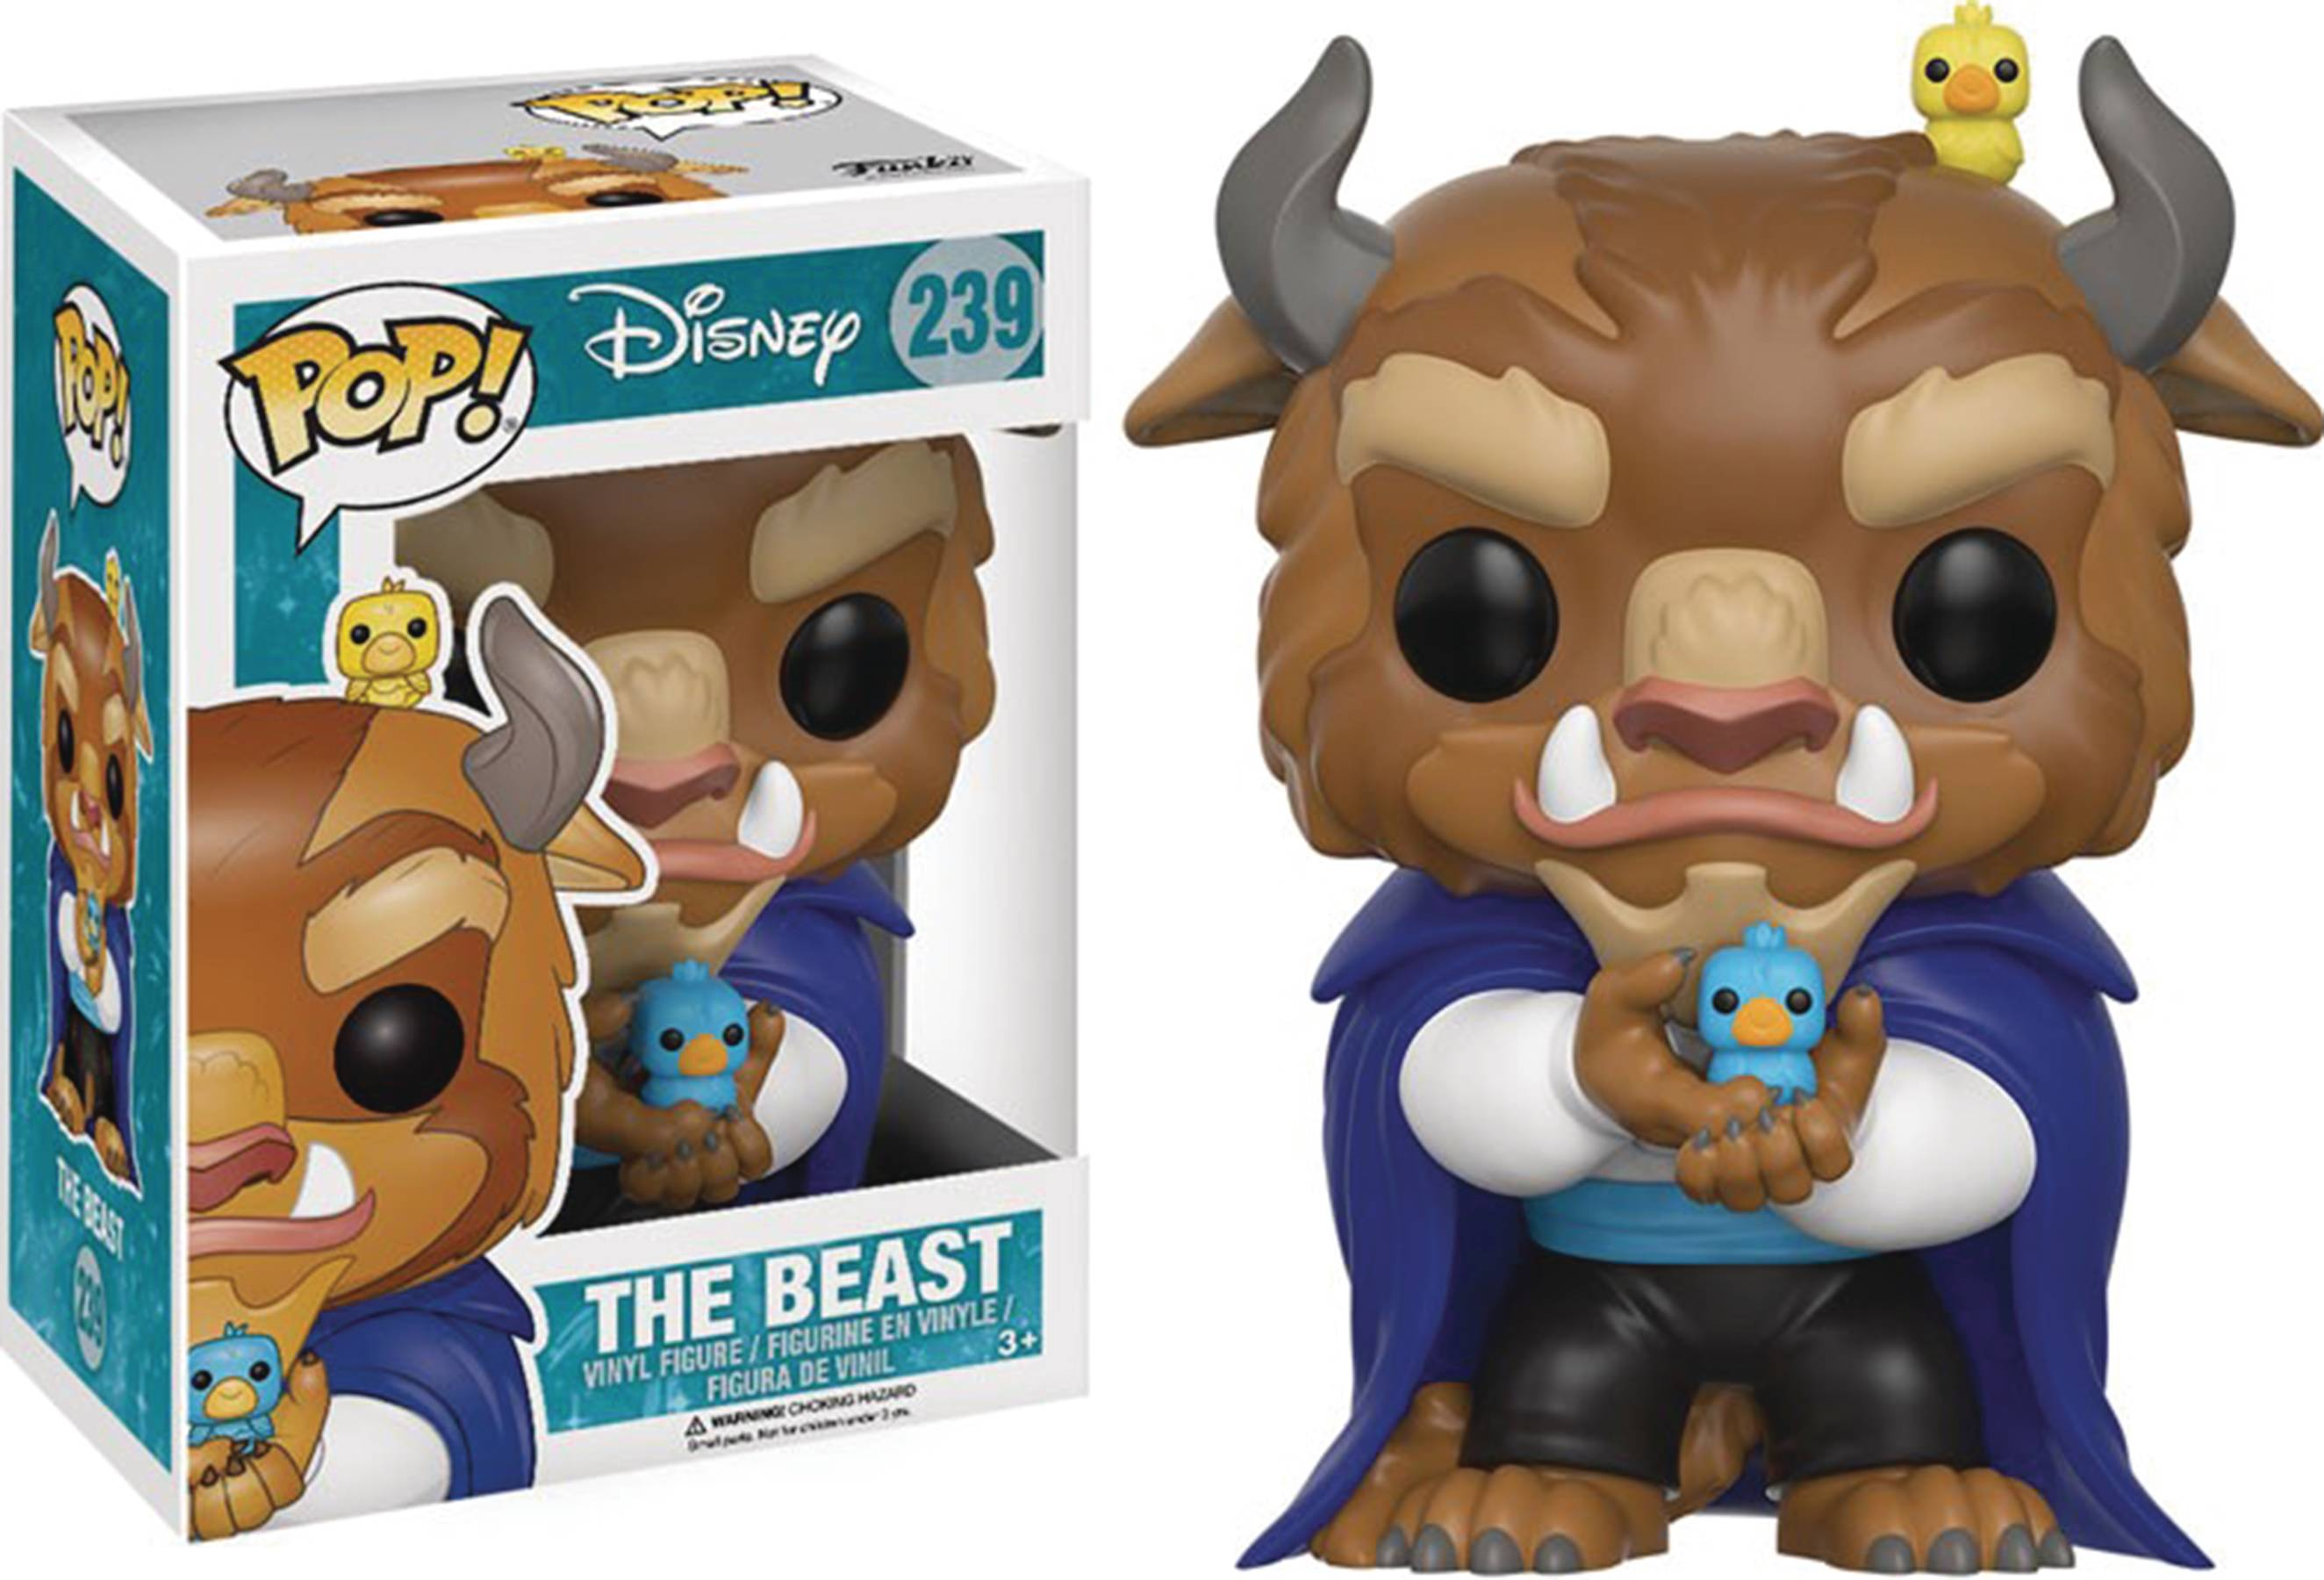 POP DISNEY BEAUTY & THE BEAST WINTER BEAST FIG